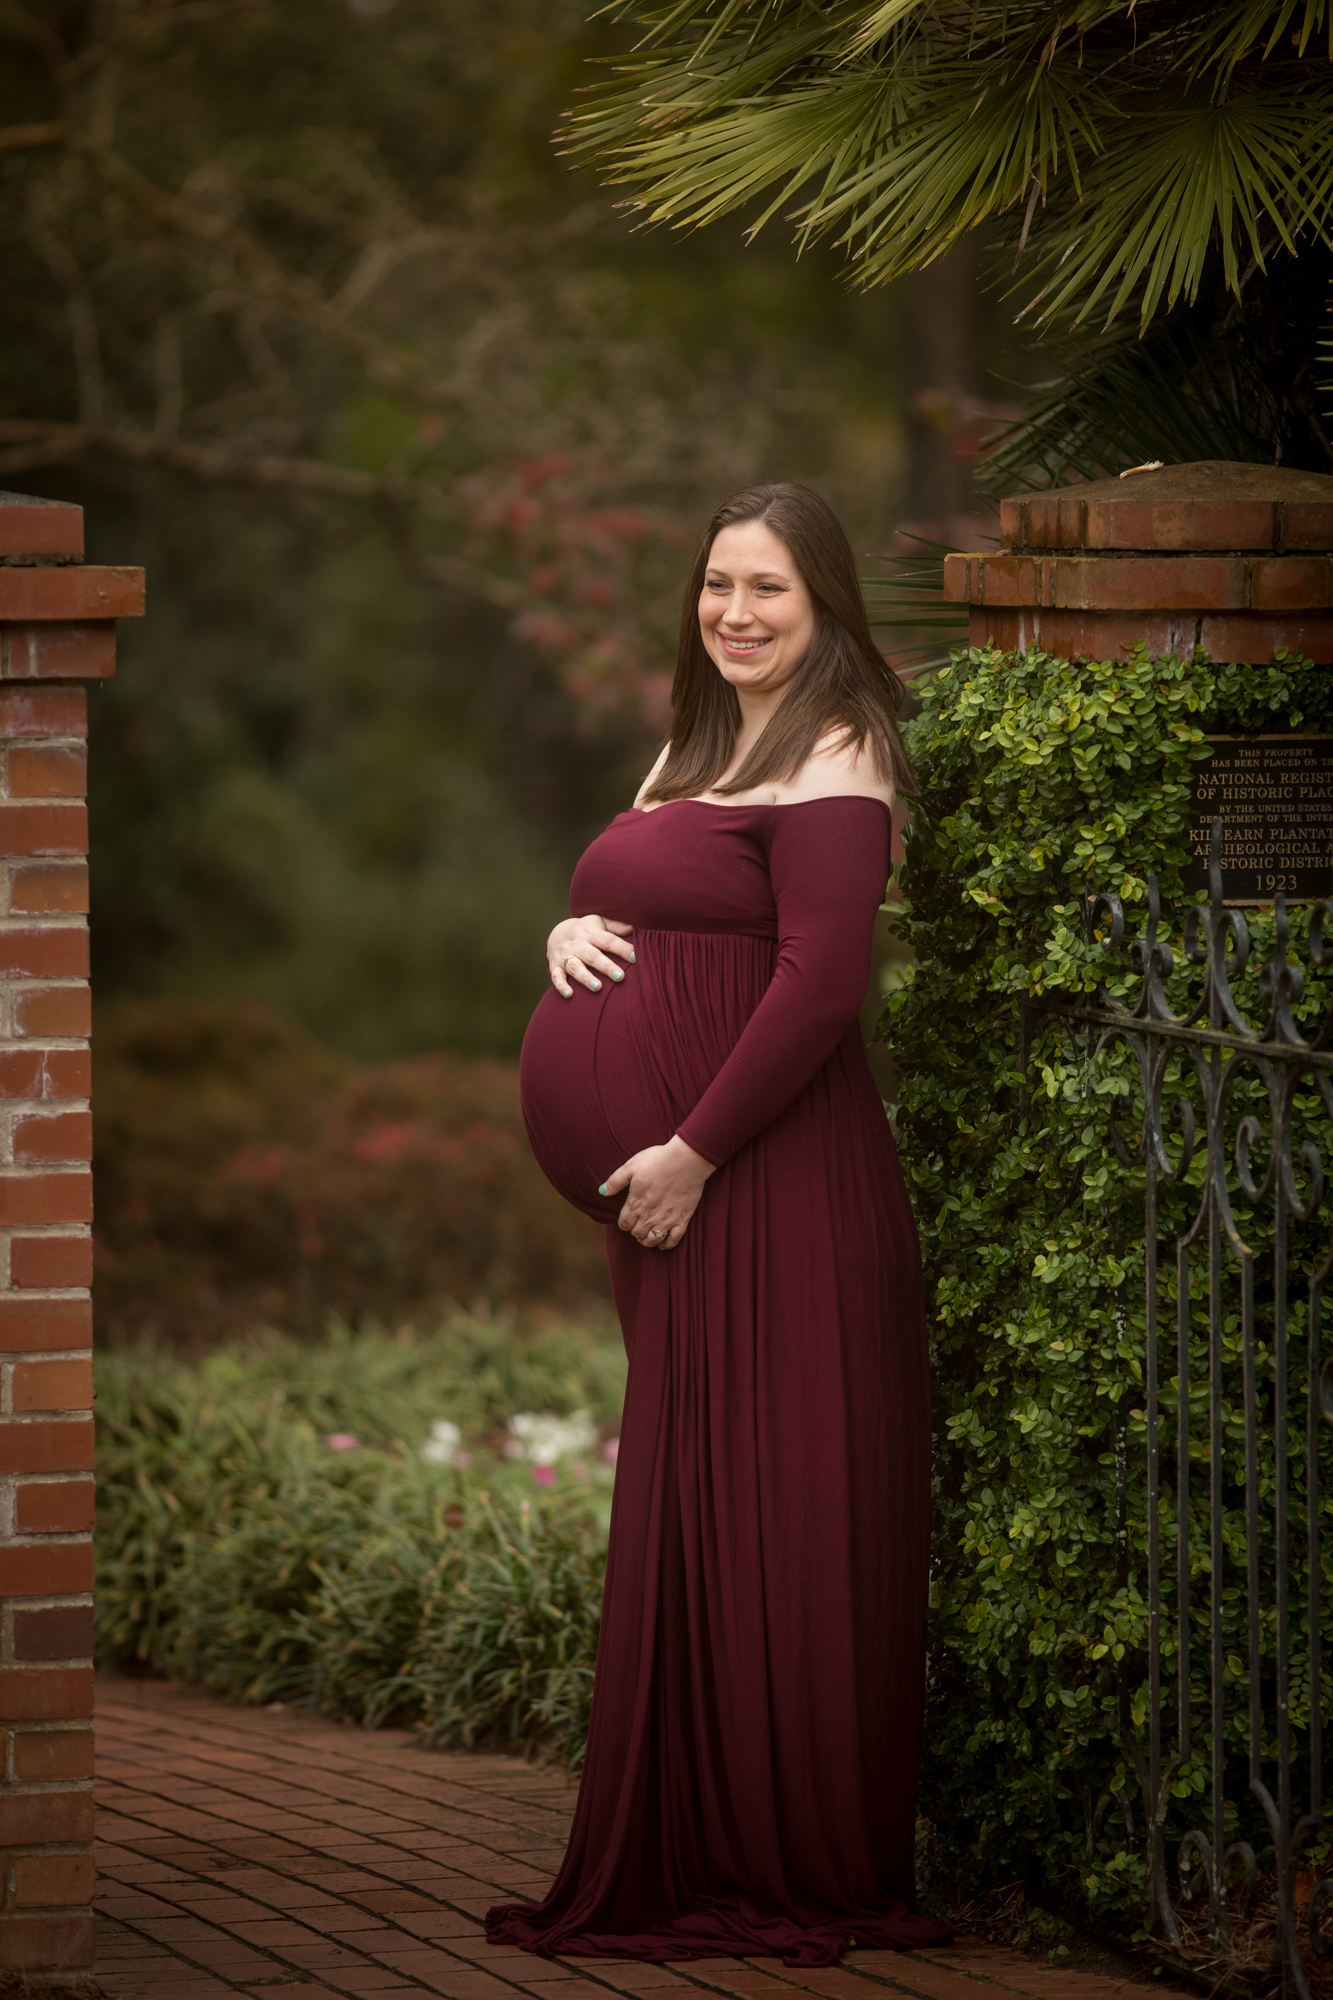 photo of a pregnant woman in Rosemary FL gardens in a plum maternity gown